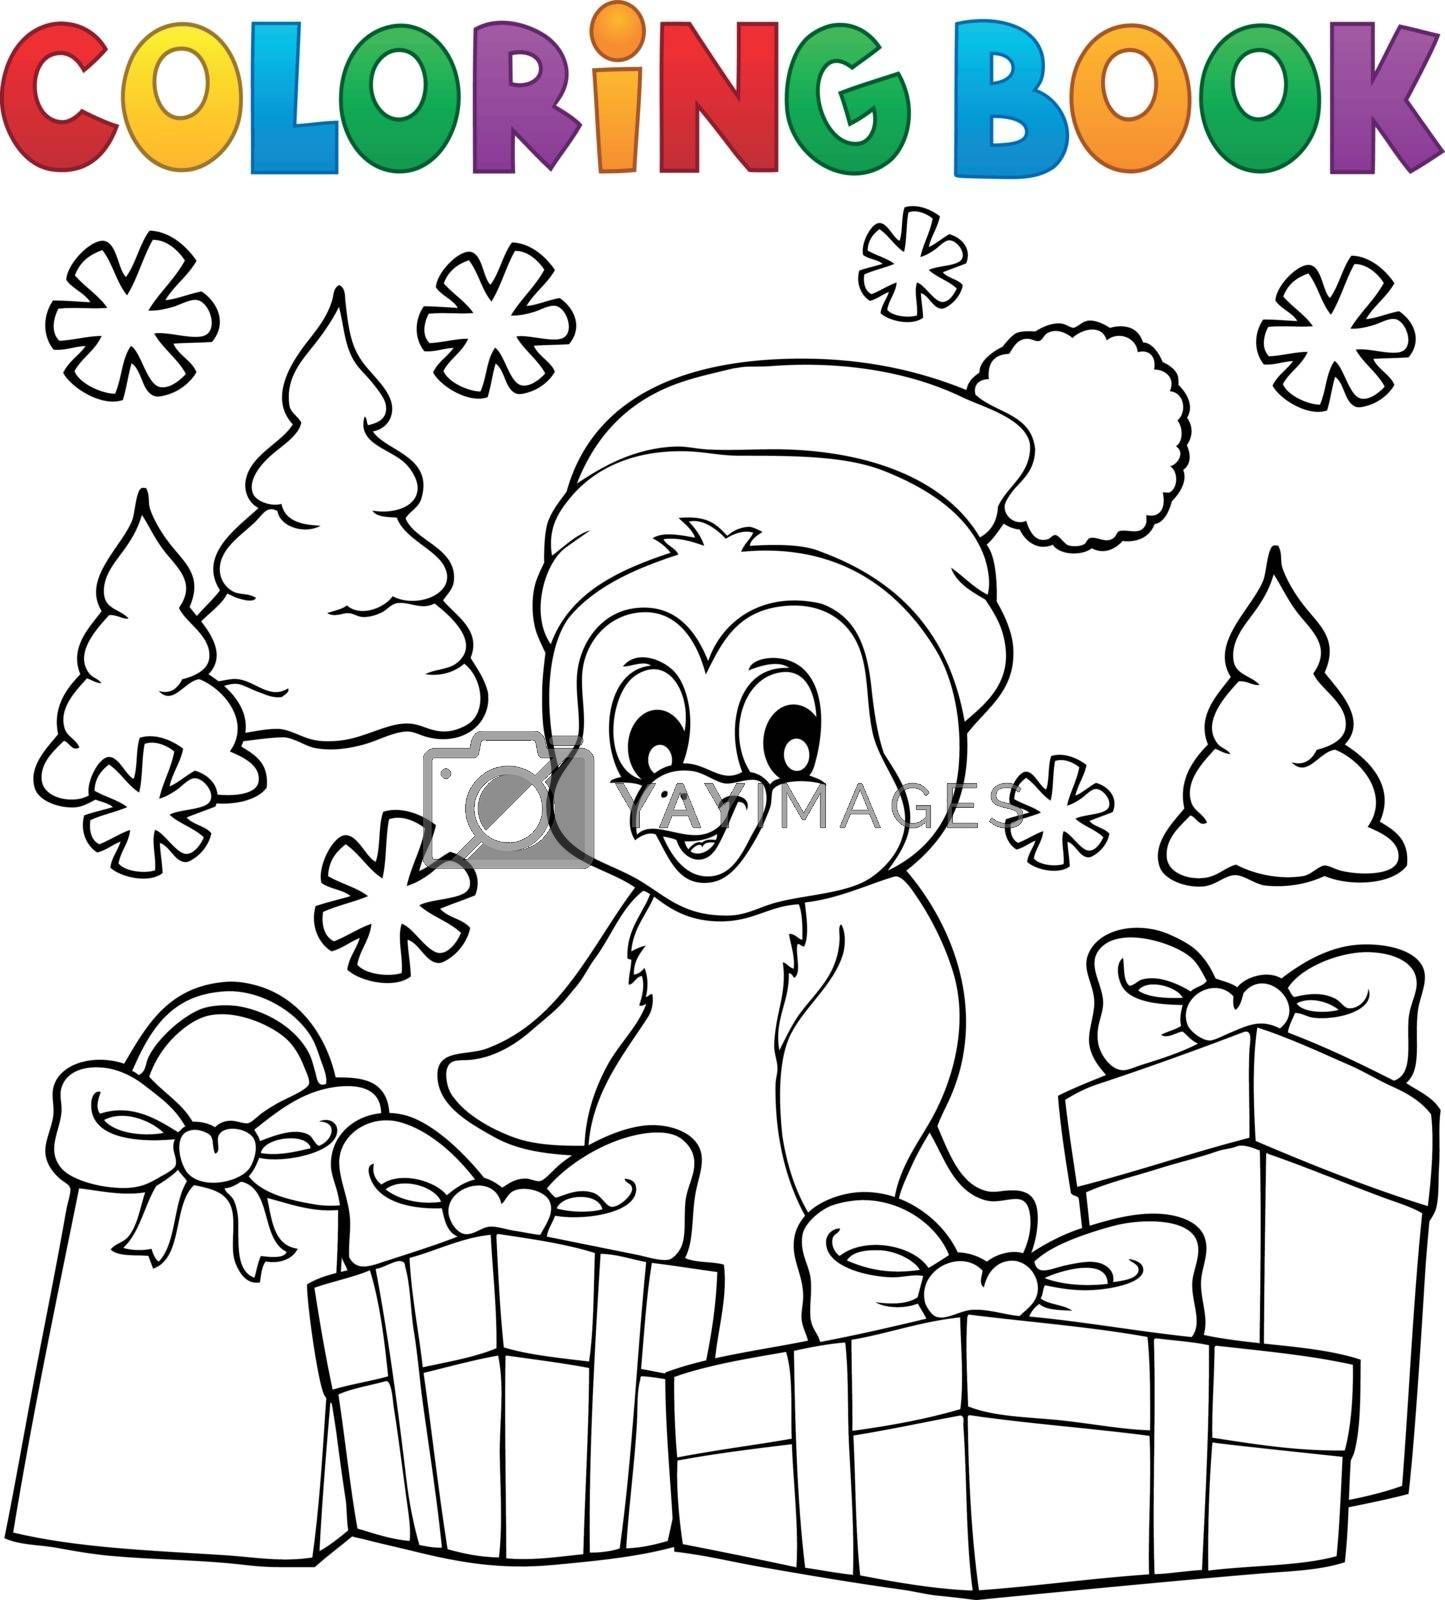 Coloring Book Christmas Penguin Topic 3 Royalty Free Stock Image Yayimages Royalty Free Stock Photos And Vectors